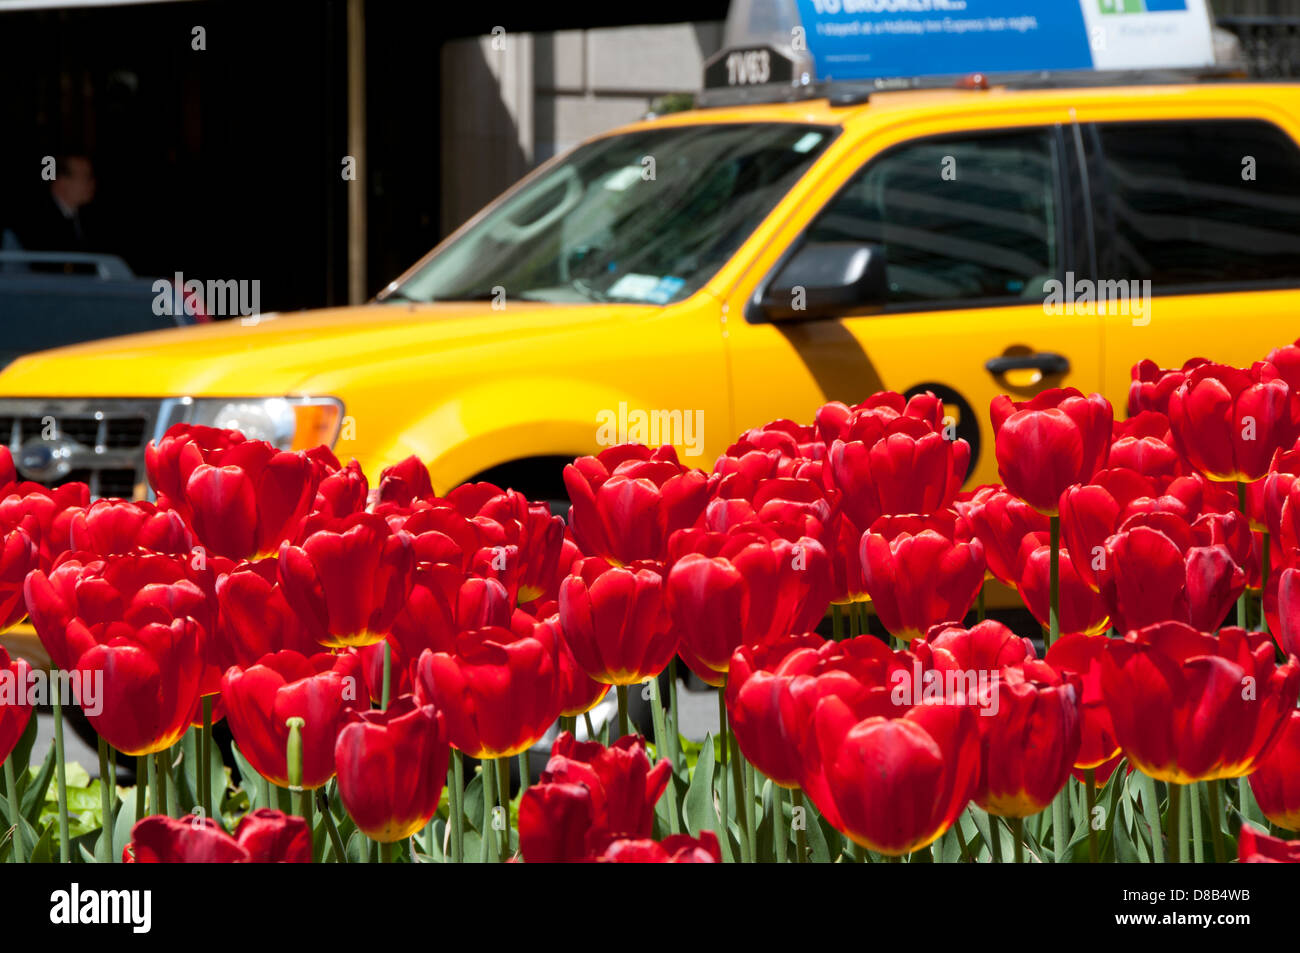 red tulips median NYC taxi taxicab - Stock Image